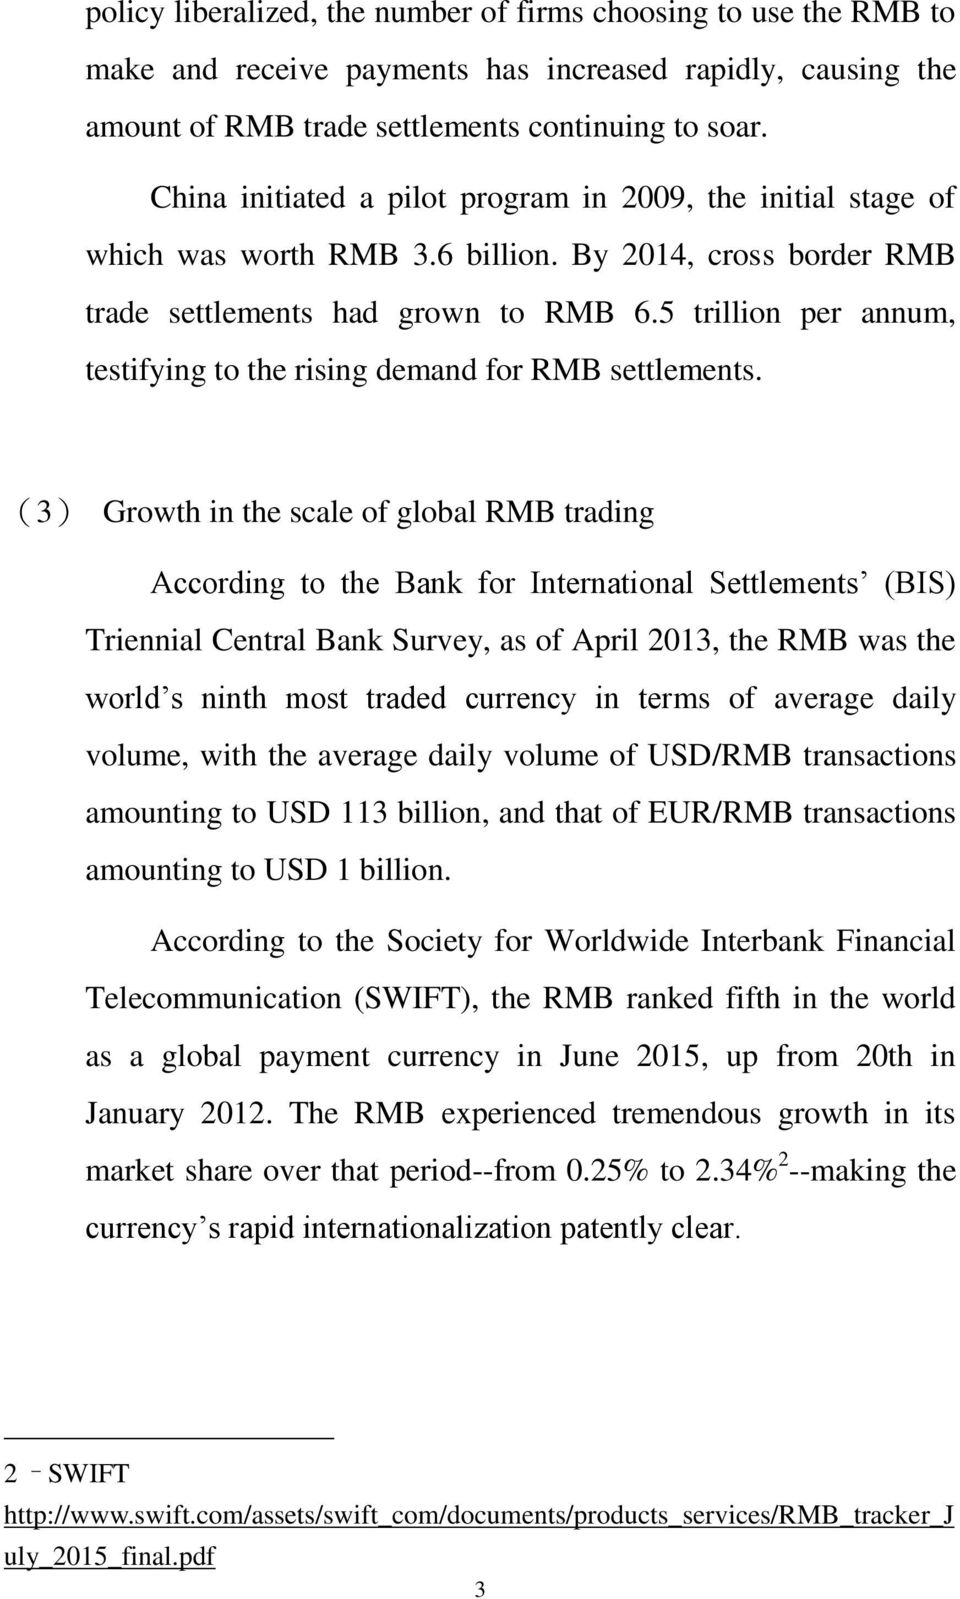 5 trillion per annum, testifying to the rising demand for RMB settlements.